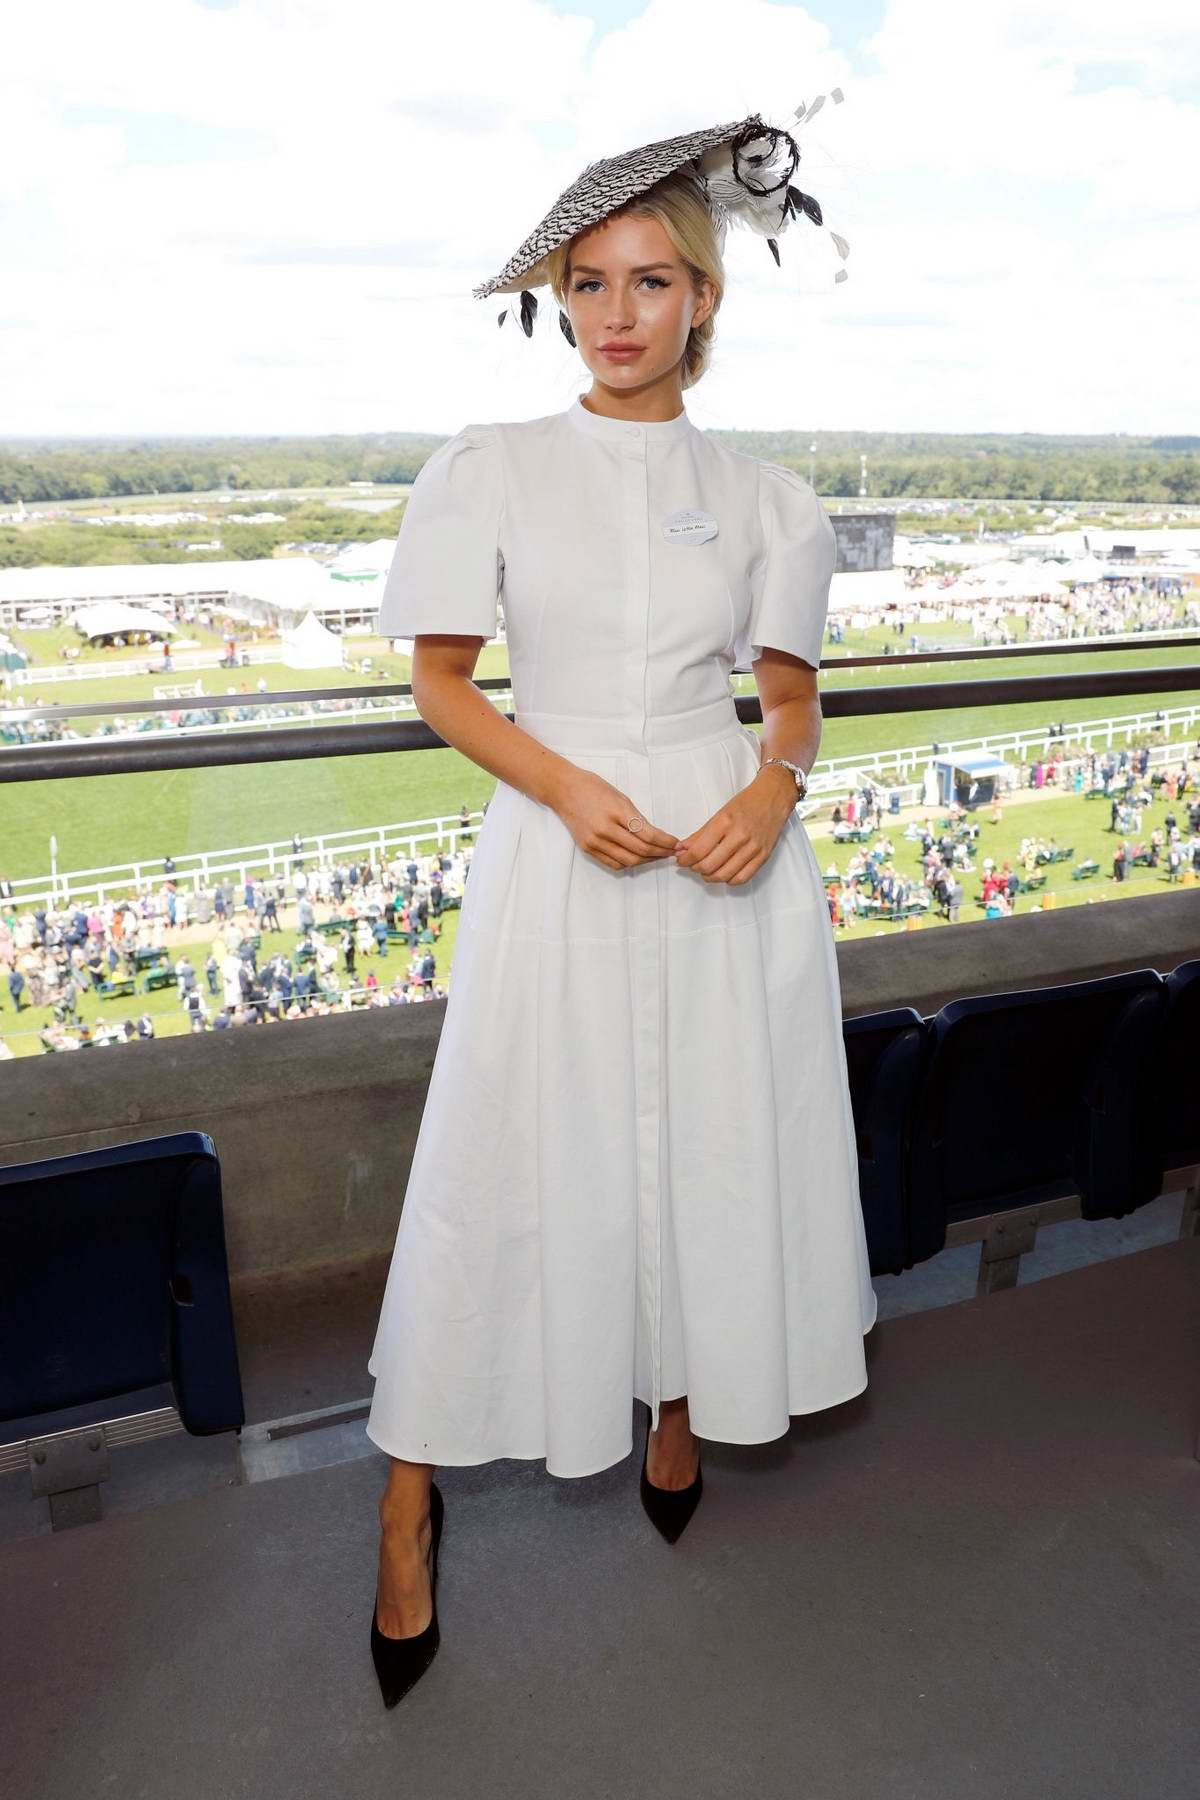 Lottie Moss attends Longines host VIPs in their private suite, Royal Enclosure at Royal Ascot, UK